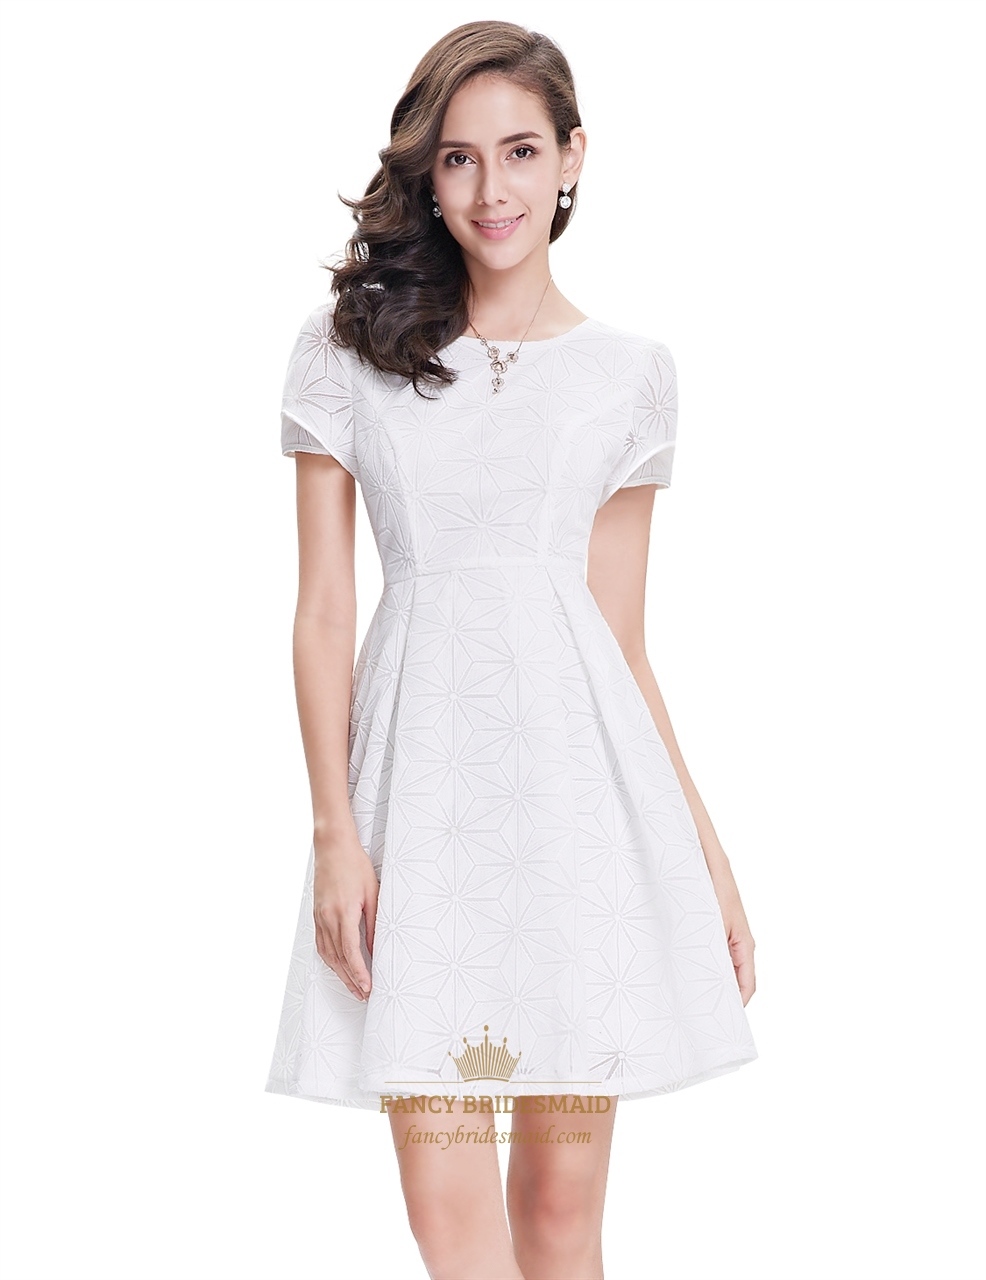 Elegant White Short Semi Formal Dresses With Short Sleeves | Fancy ...